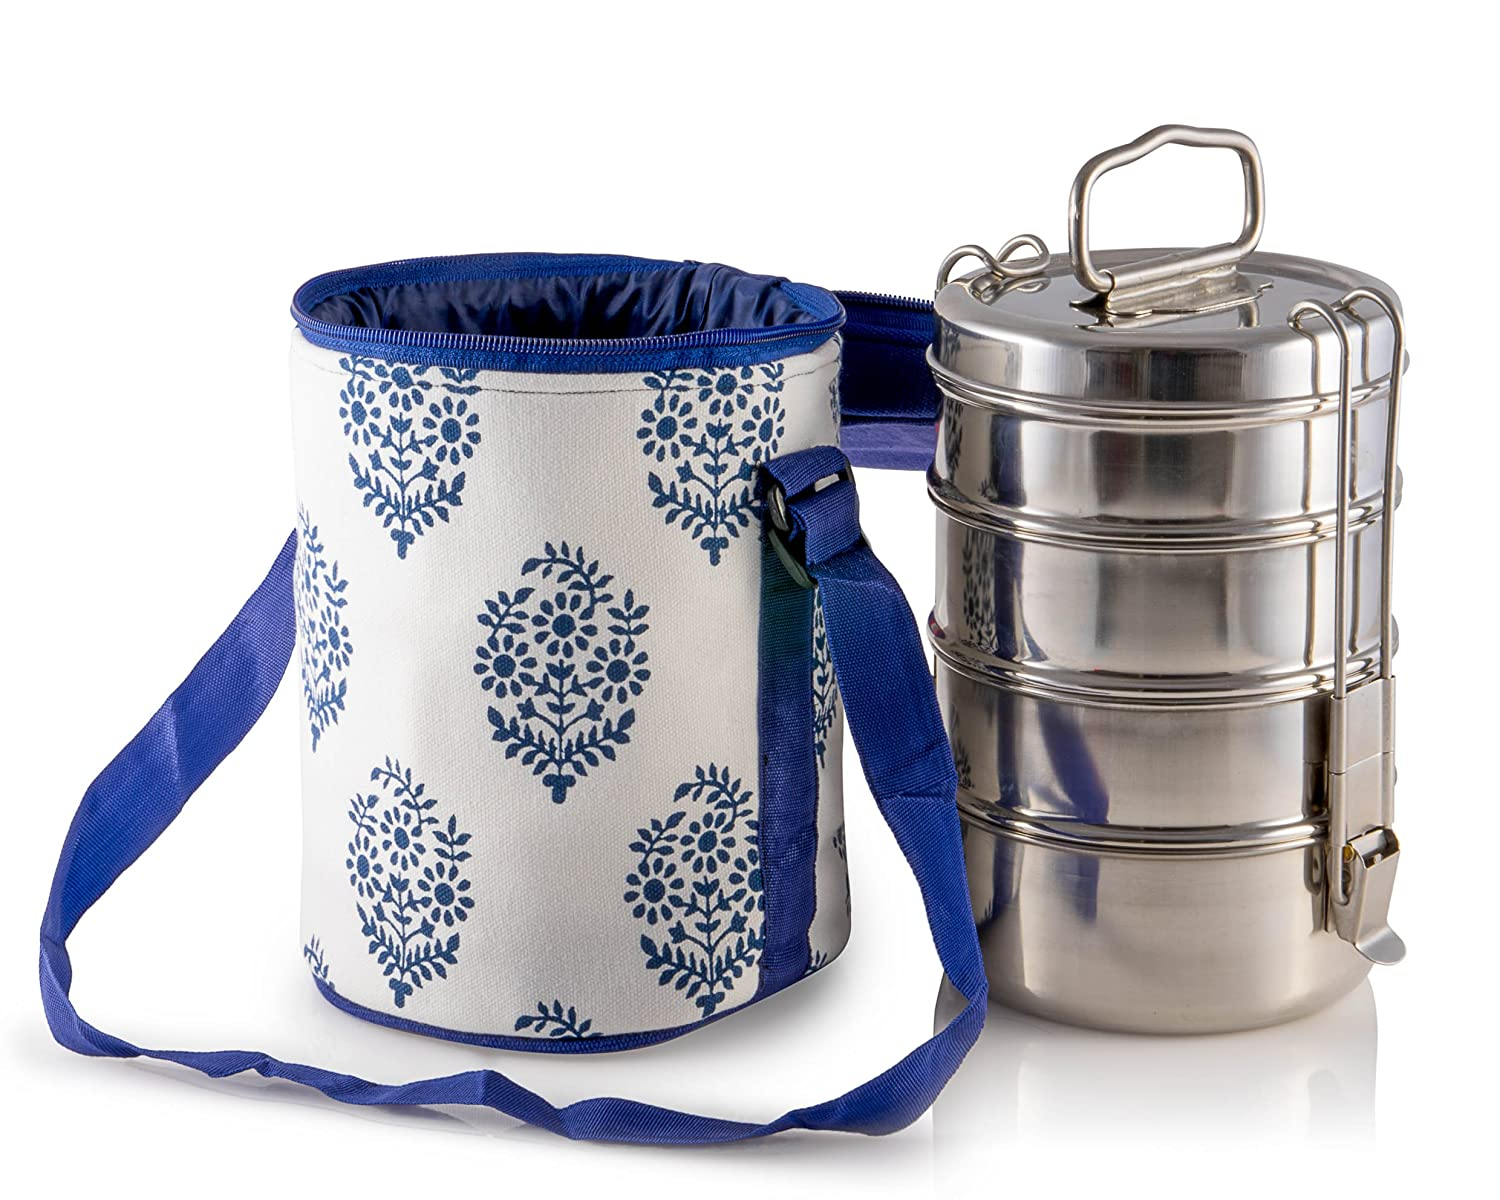 4 Tier Large Tiffin With Thermally Insulated Blue Patterned Tiffin Bag Carrier Indian Tiffin 4t8b4 & KAL_BLUF